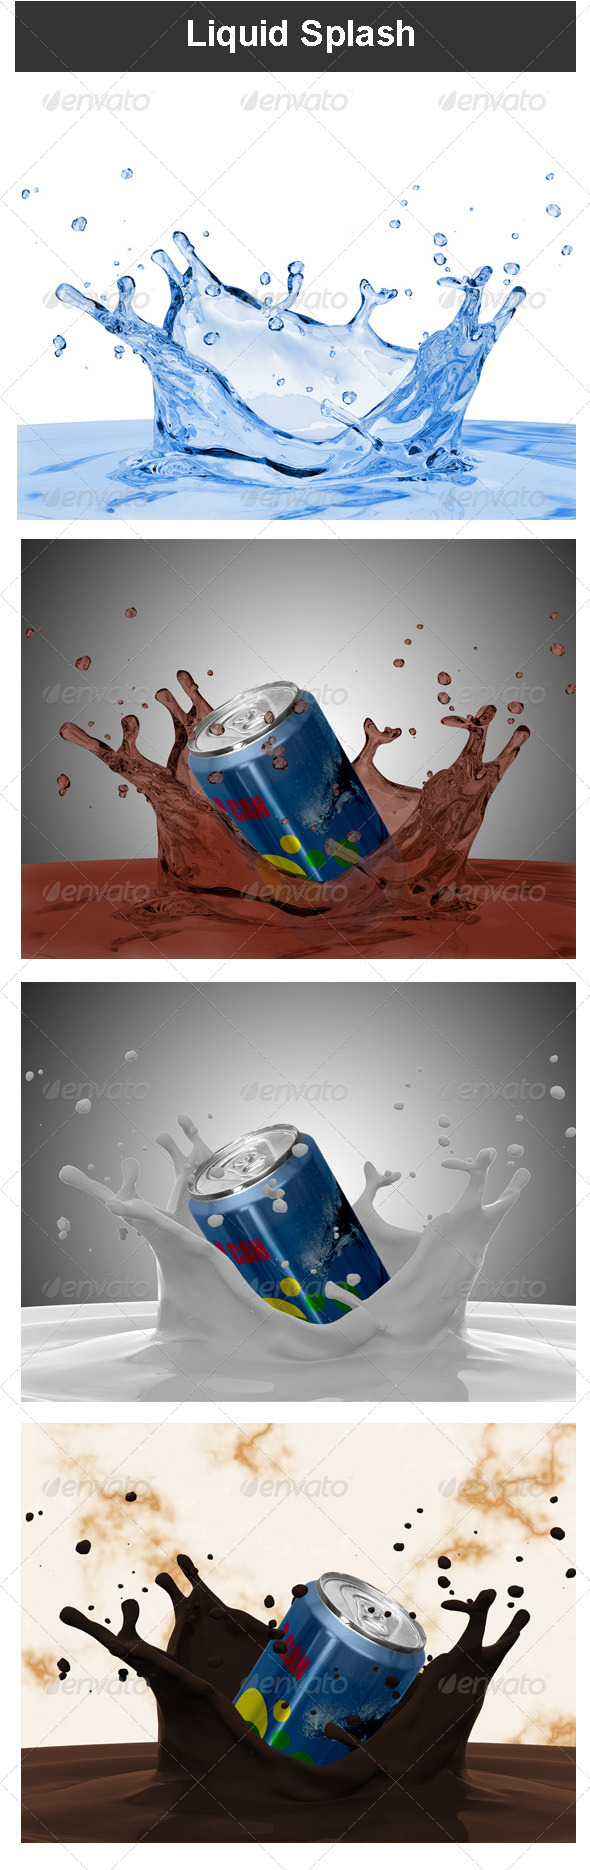 Liquid Splash - Miscellaneous 3D Renders